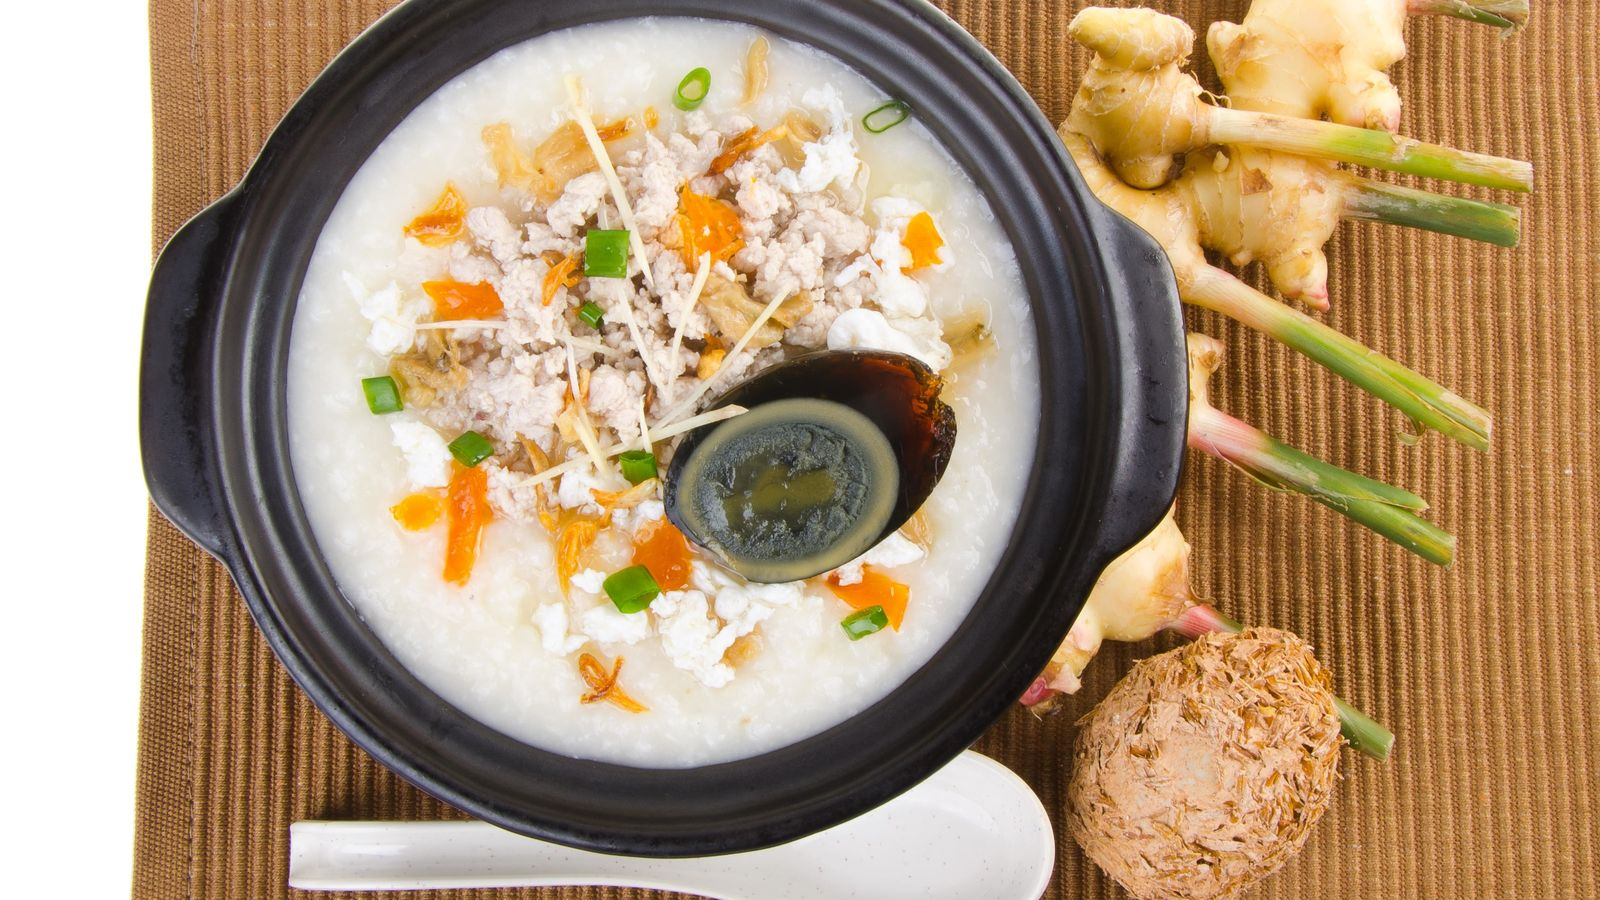 See anything you like? A congee(porridge) made with pork, vegetables –and a 'century egg'. A common ...